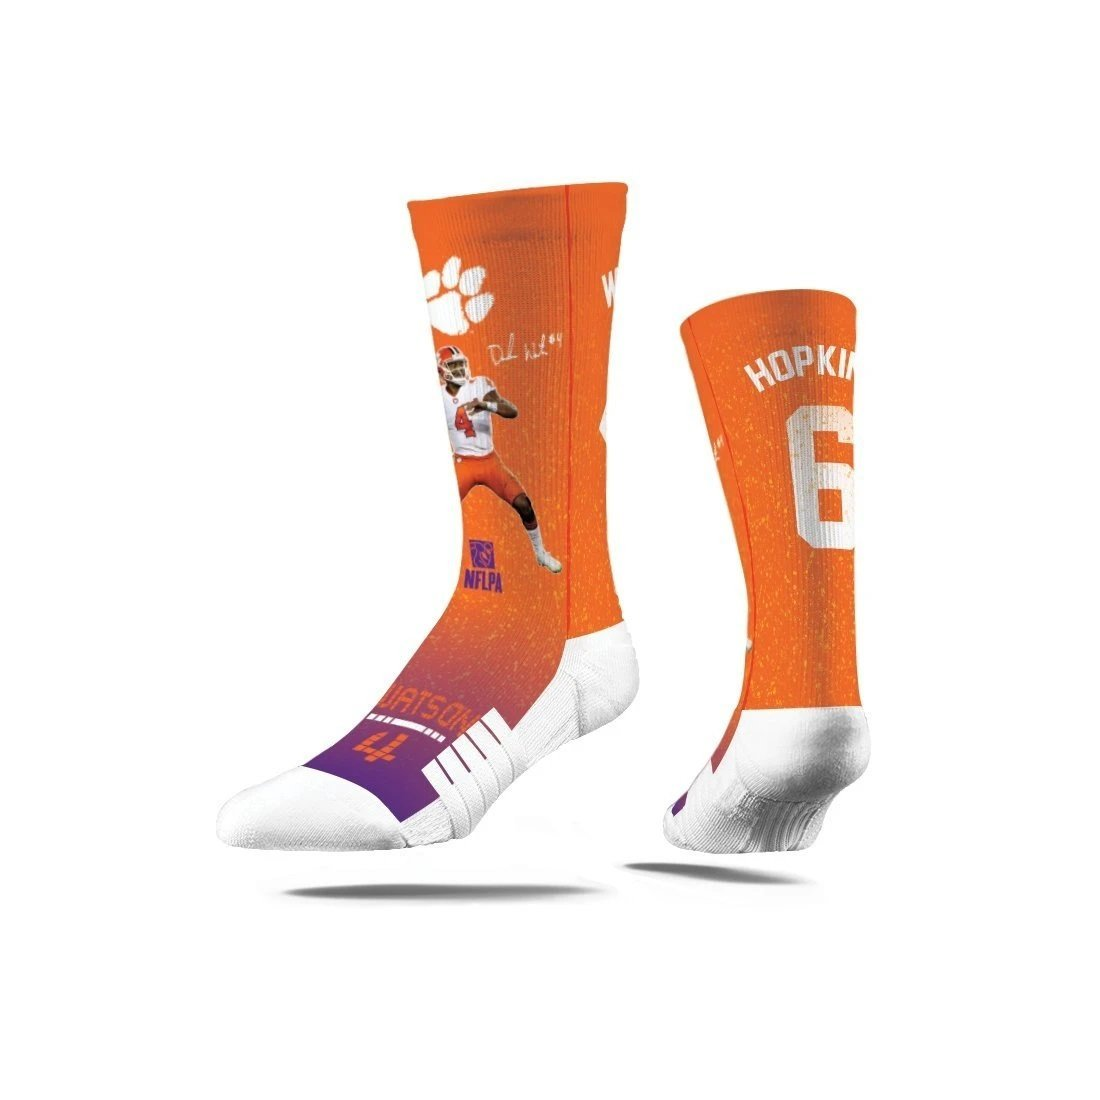 Strideline Watson and Hopkins Duo Crew Socks - Mr. Knickerbocker